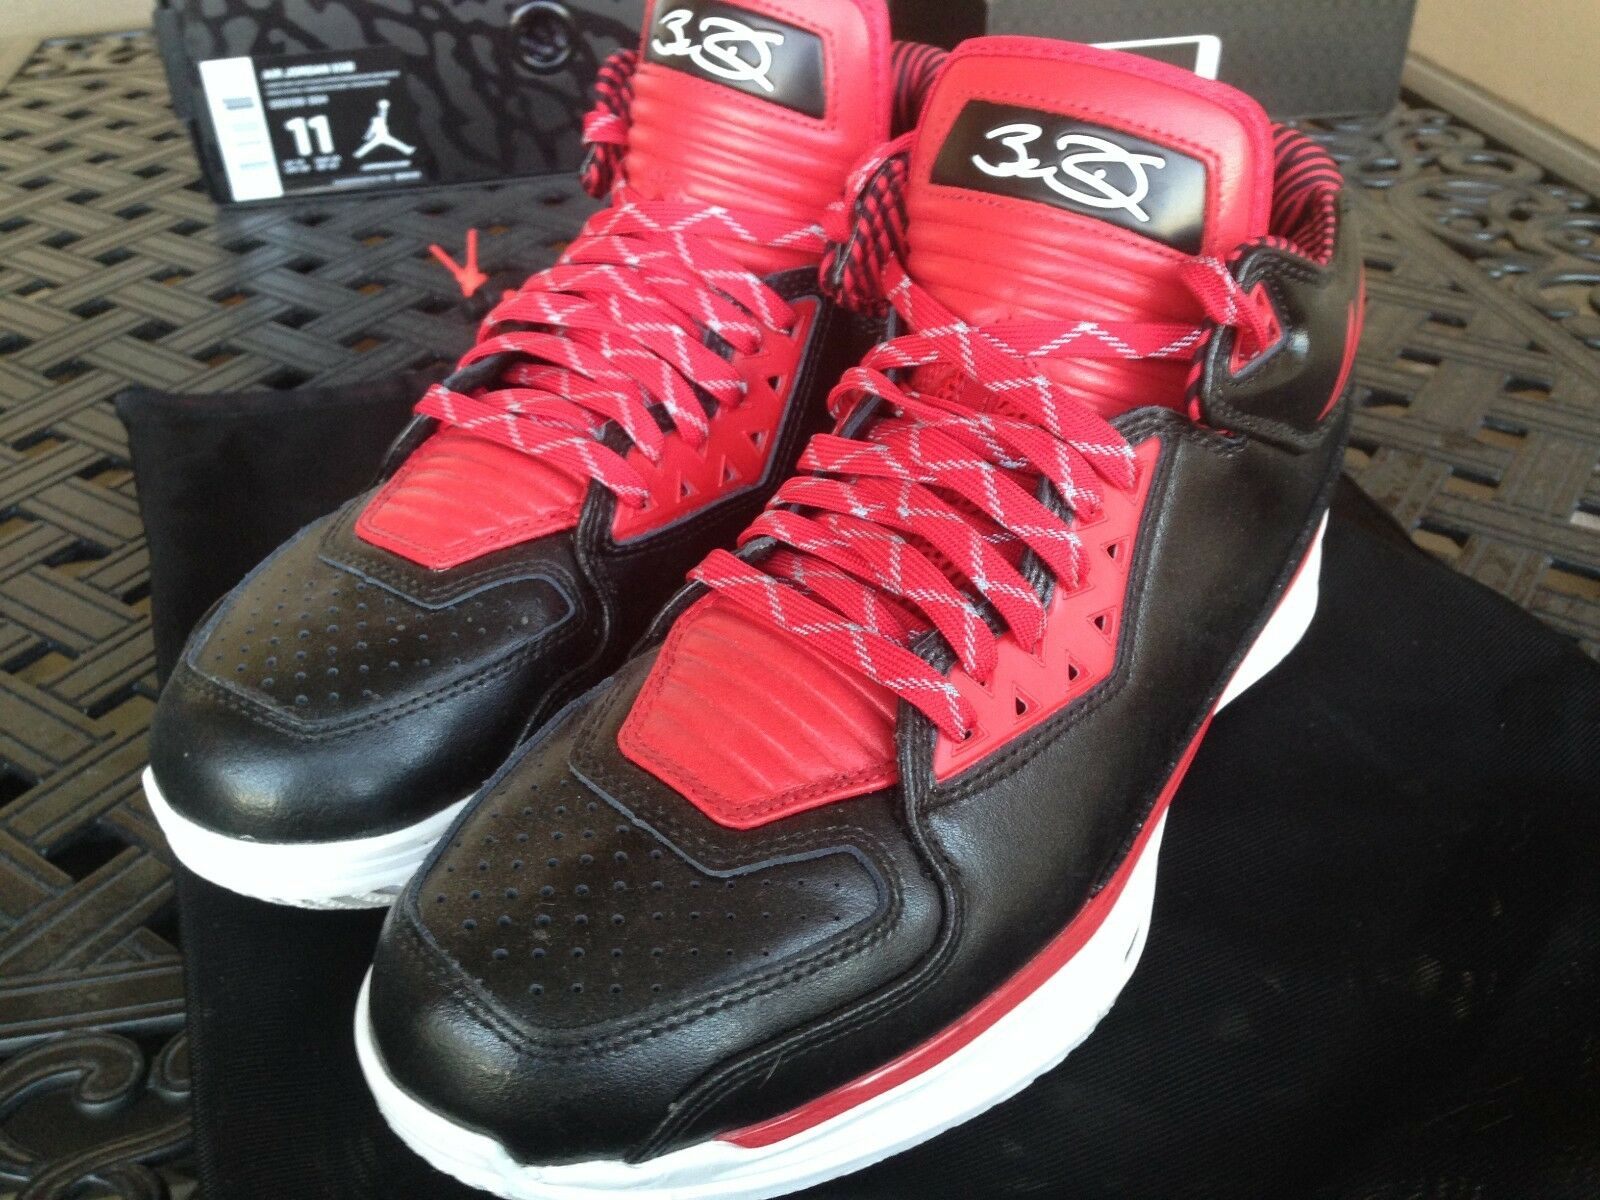 LI-NING WAY OF WADE (WOW) 2  ANNOUNCEMENT  size 11.5   Lining WOW2 black